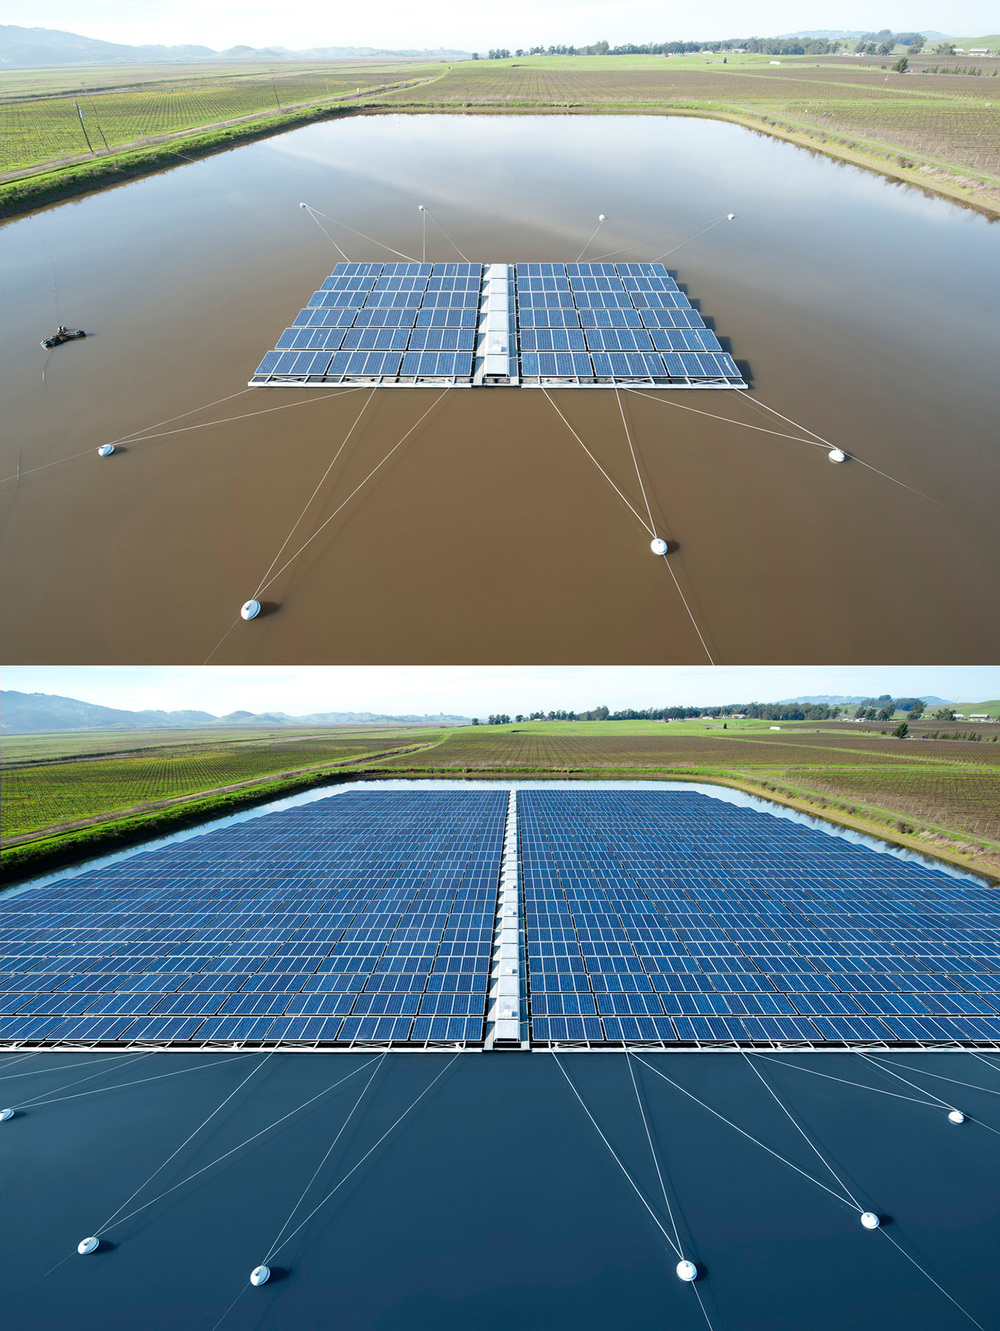 Top: Original photo  Bottom: Photo manipulated image  The objective of this project is to digitally create an extension of solar panels to fill up the pond. Client provided me with their professionally shot image as original plate.  Software: Photoshop  Client: Natalie Kitamura Design, SPG Solar